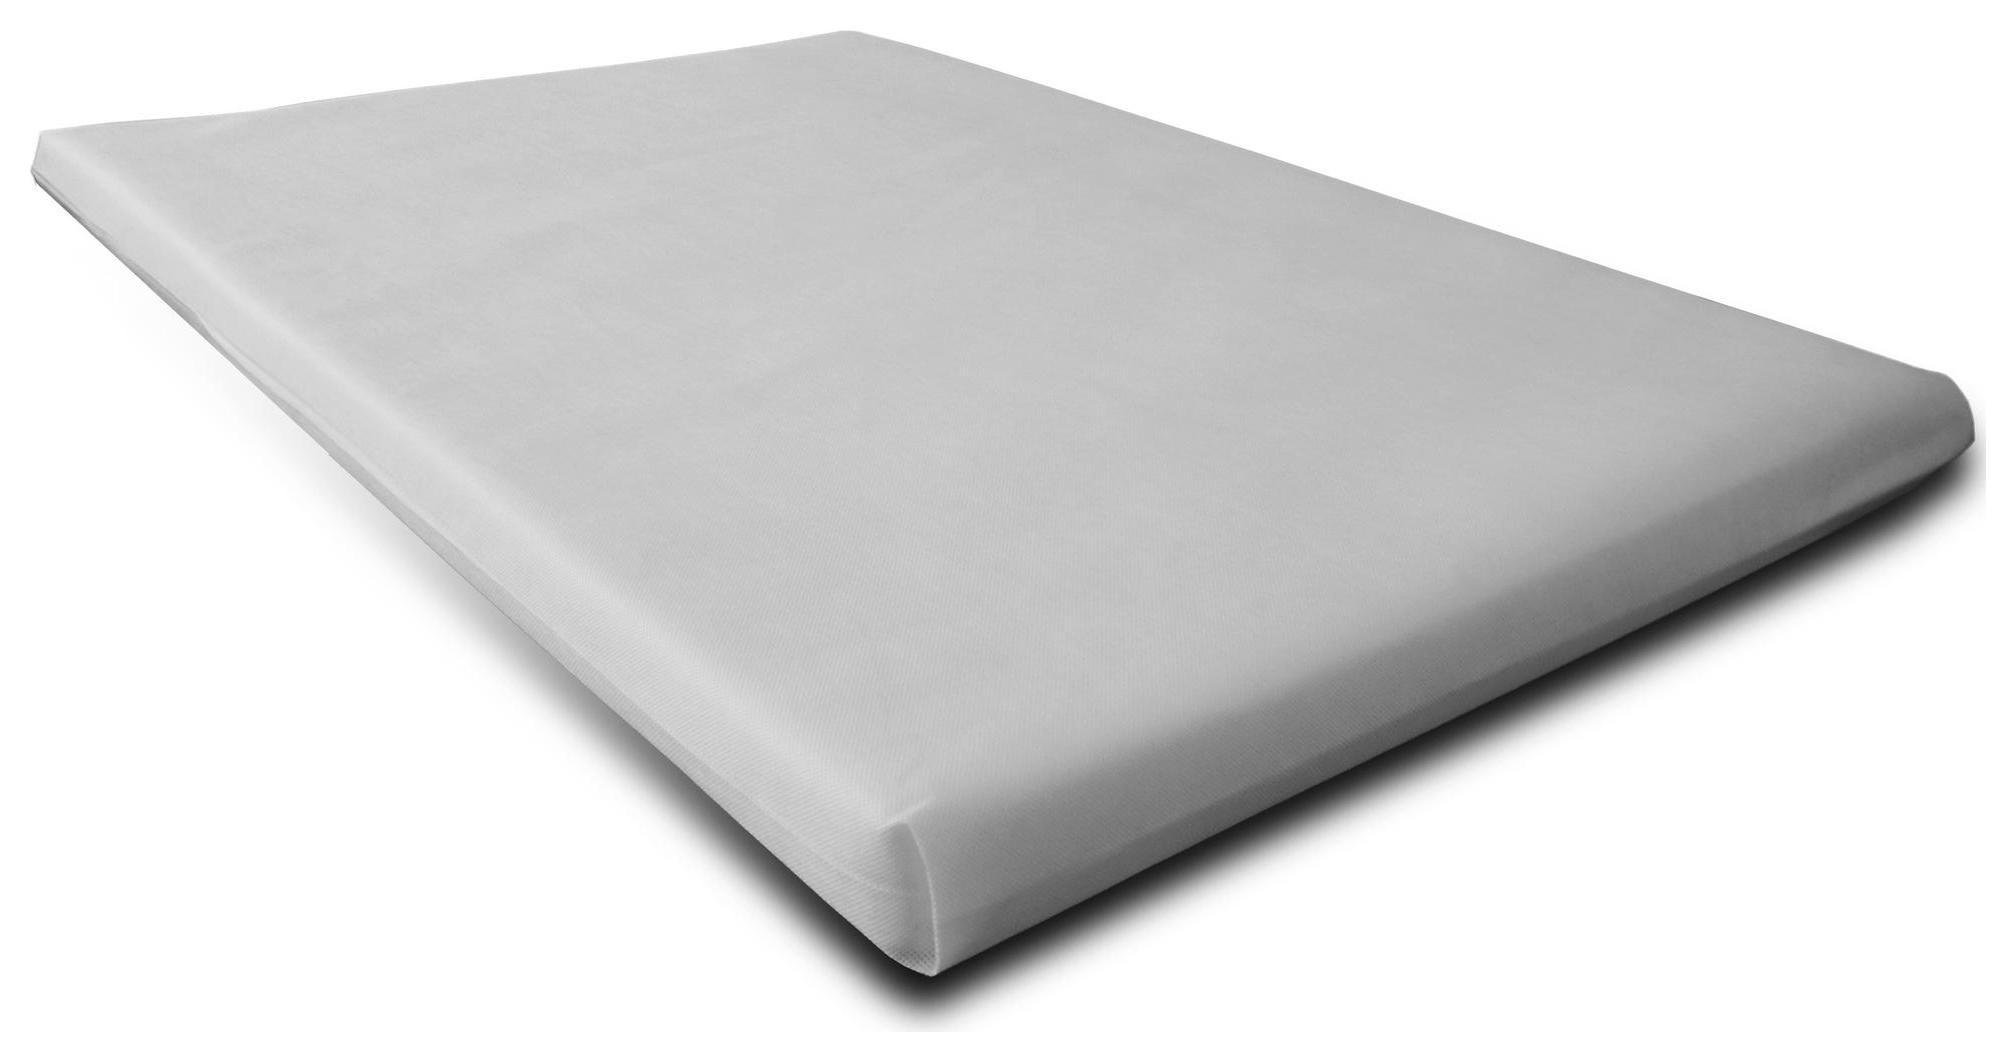 Image of Step2 - Cot - Bed - Mattress